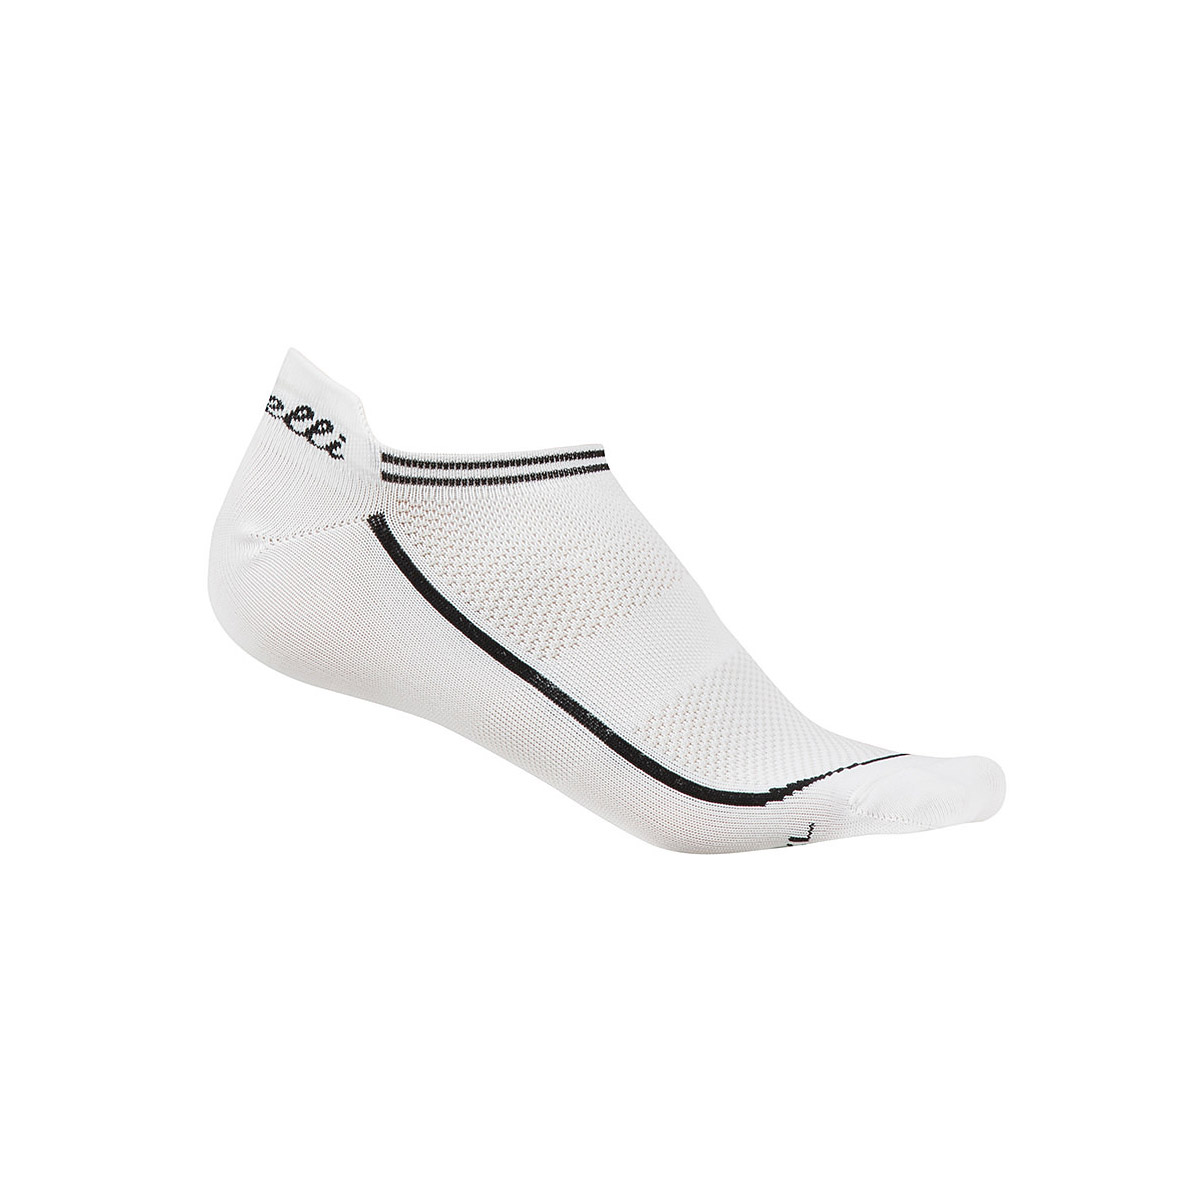 CHAUSSETTES CASTELLI INVISIBLE FEMME BLANC SMALL/MEDIUM